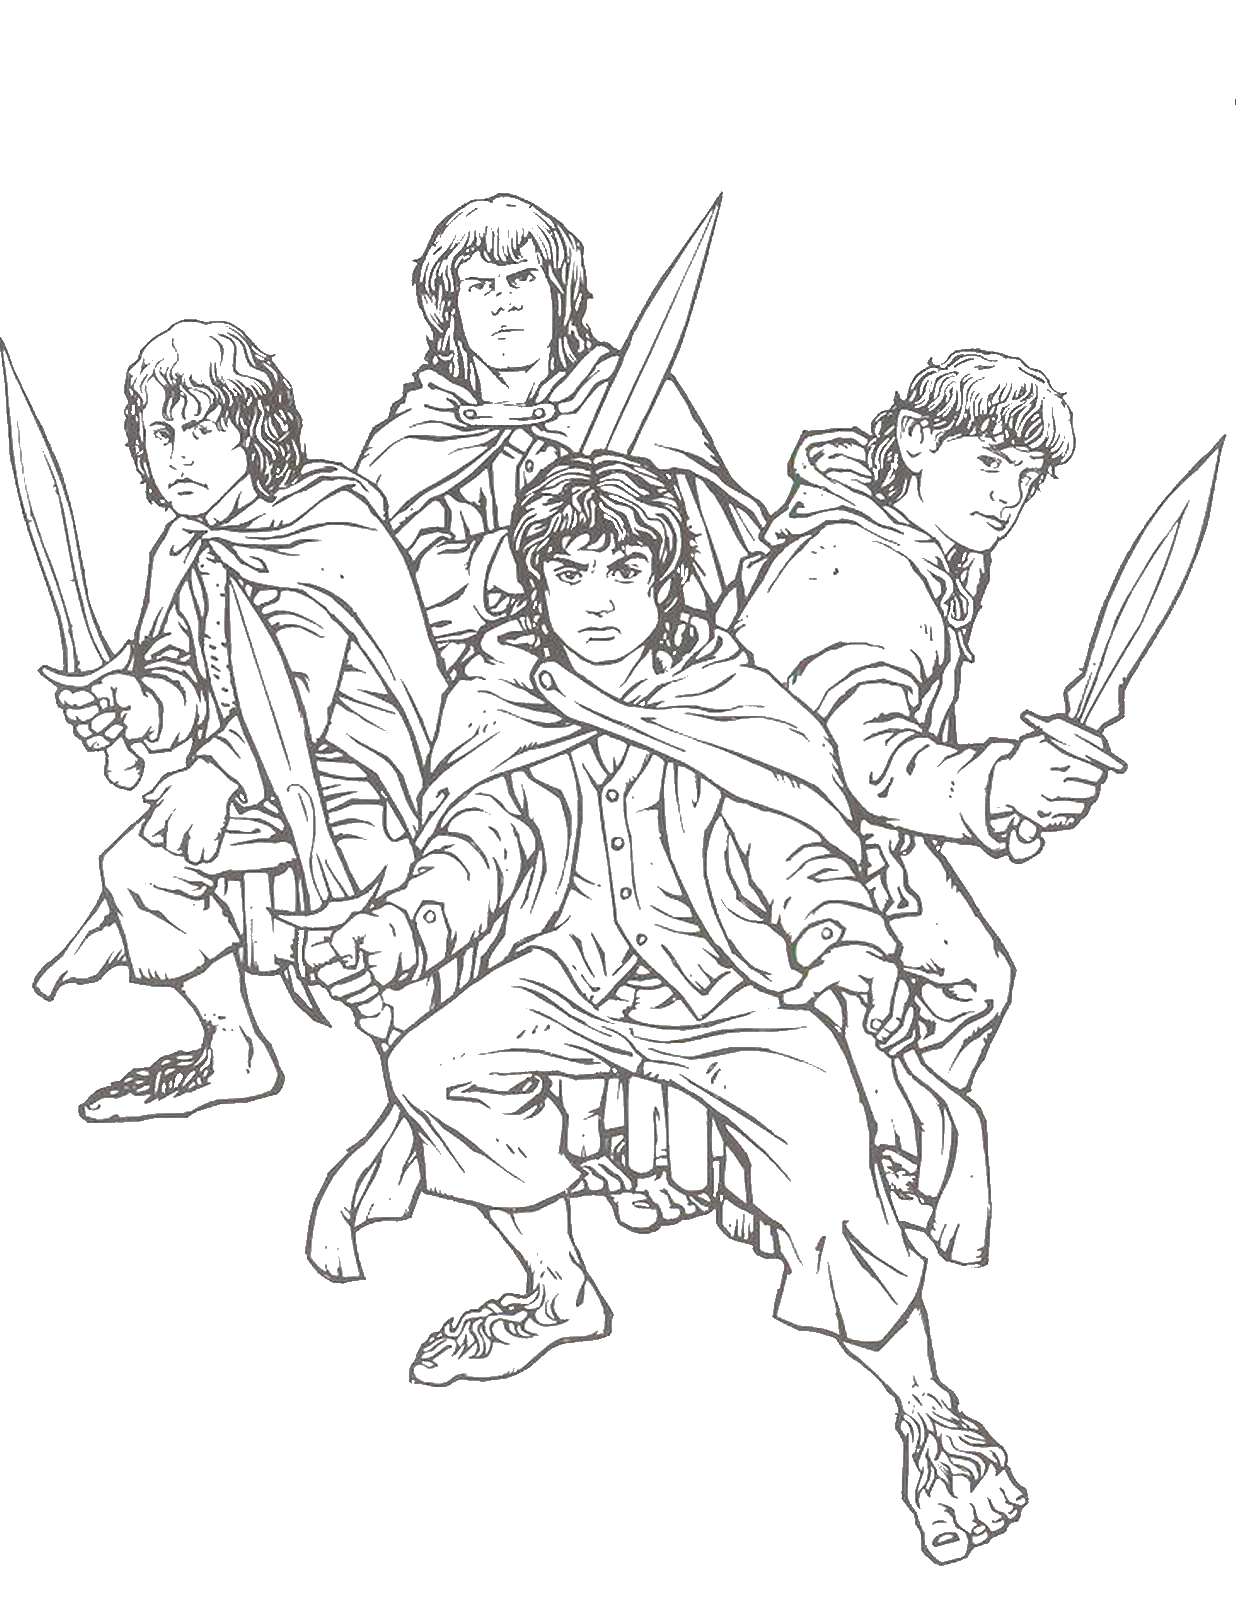 Free Coloring Pages Lord Of the Rings Lord Of the Rings Coloring Pages